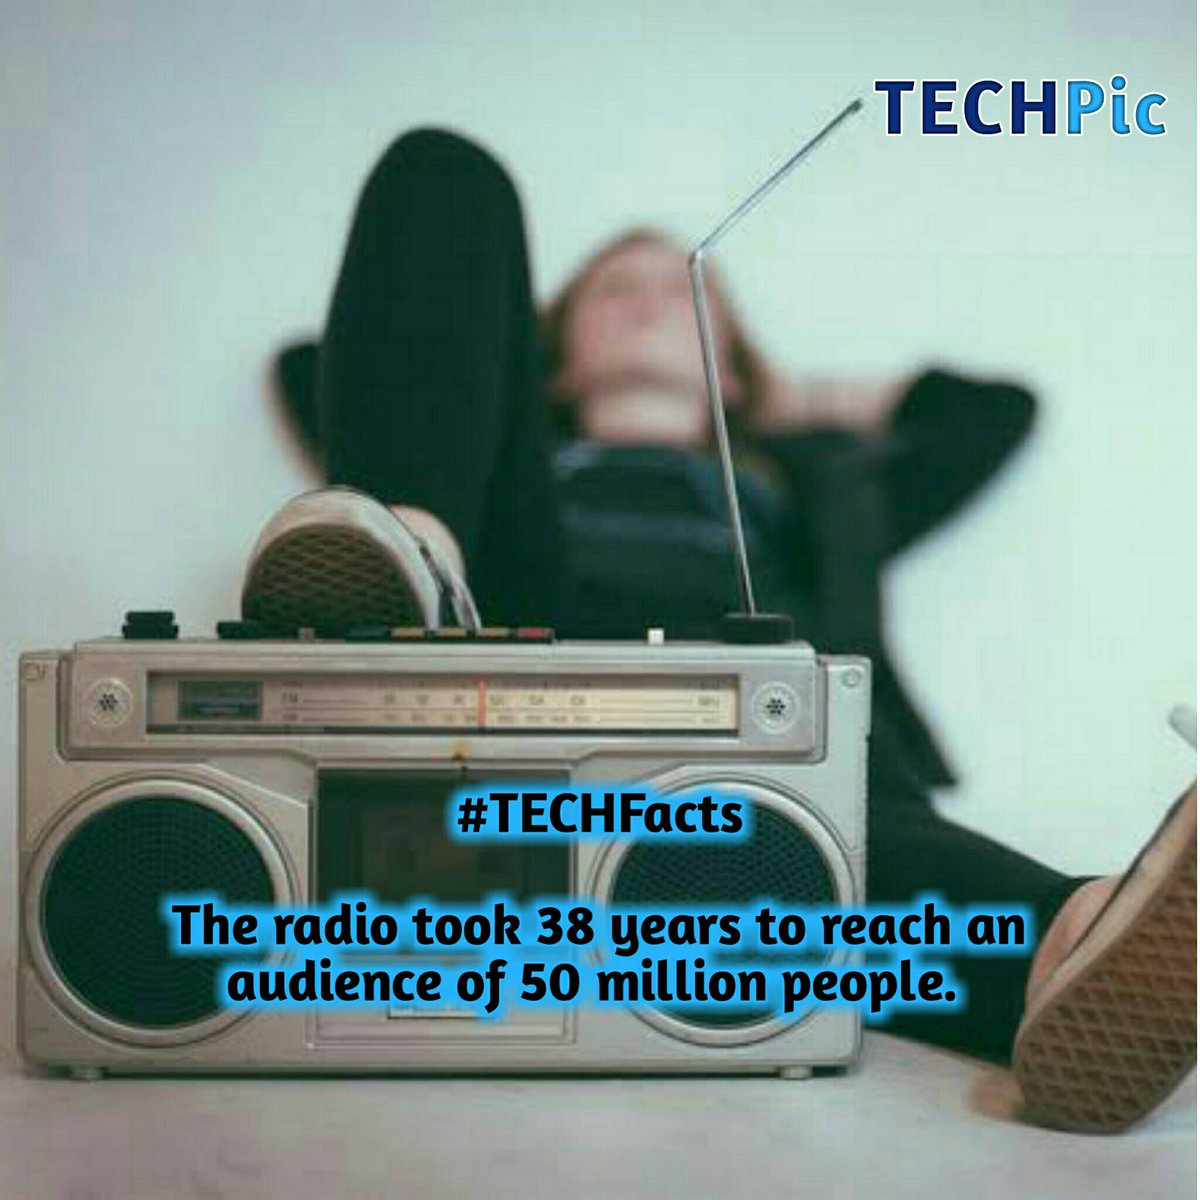 #TECHFacts  The radio took 38 years to reach an audience of 50 million people. pic.twitter.com/LRuOvYJJbv